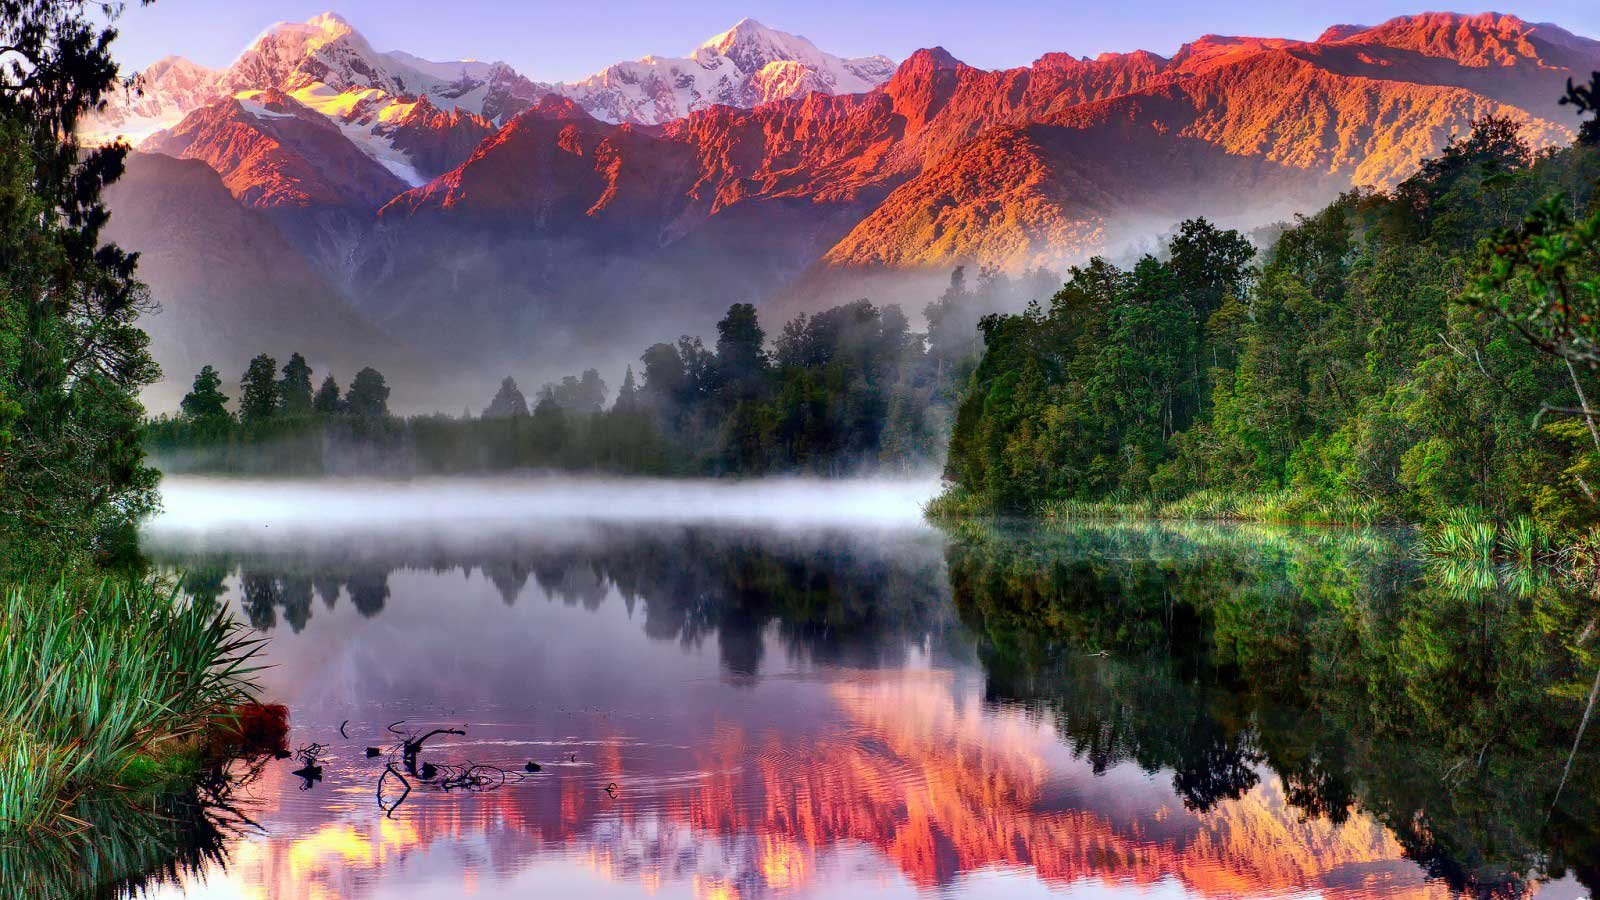 Messages >> Amazing beautiful landscape nature sky clouds tree lake forest fog mountain wallpaper | 1600x900 ...